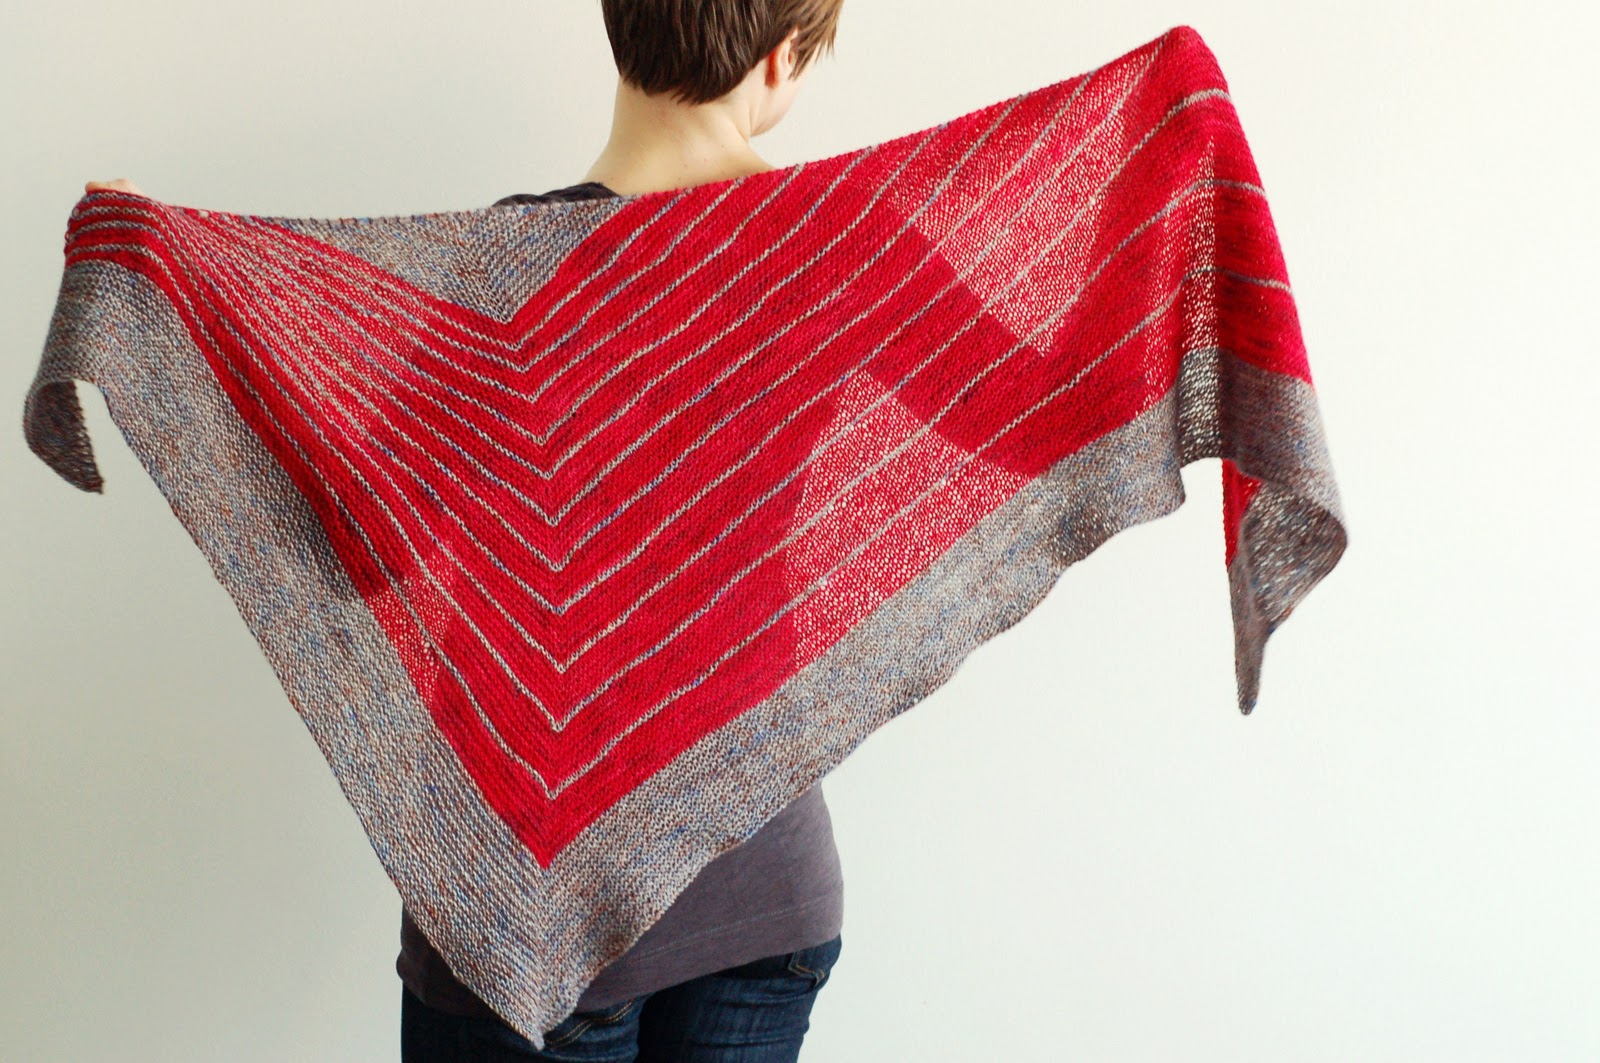 """The Local Yarn Shawl is a boomerang shaped shawl, consisting of simple lace, textured, eyelet and mesh stitches. The pattern is written for two sizes: Small and Large. The small shawl only consists of one color but in a gradient if desired ( yards); while the large shawl uses two contrasting or """"blendy"""" colors ( yards each.)/5(98)."""